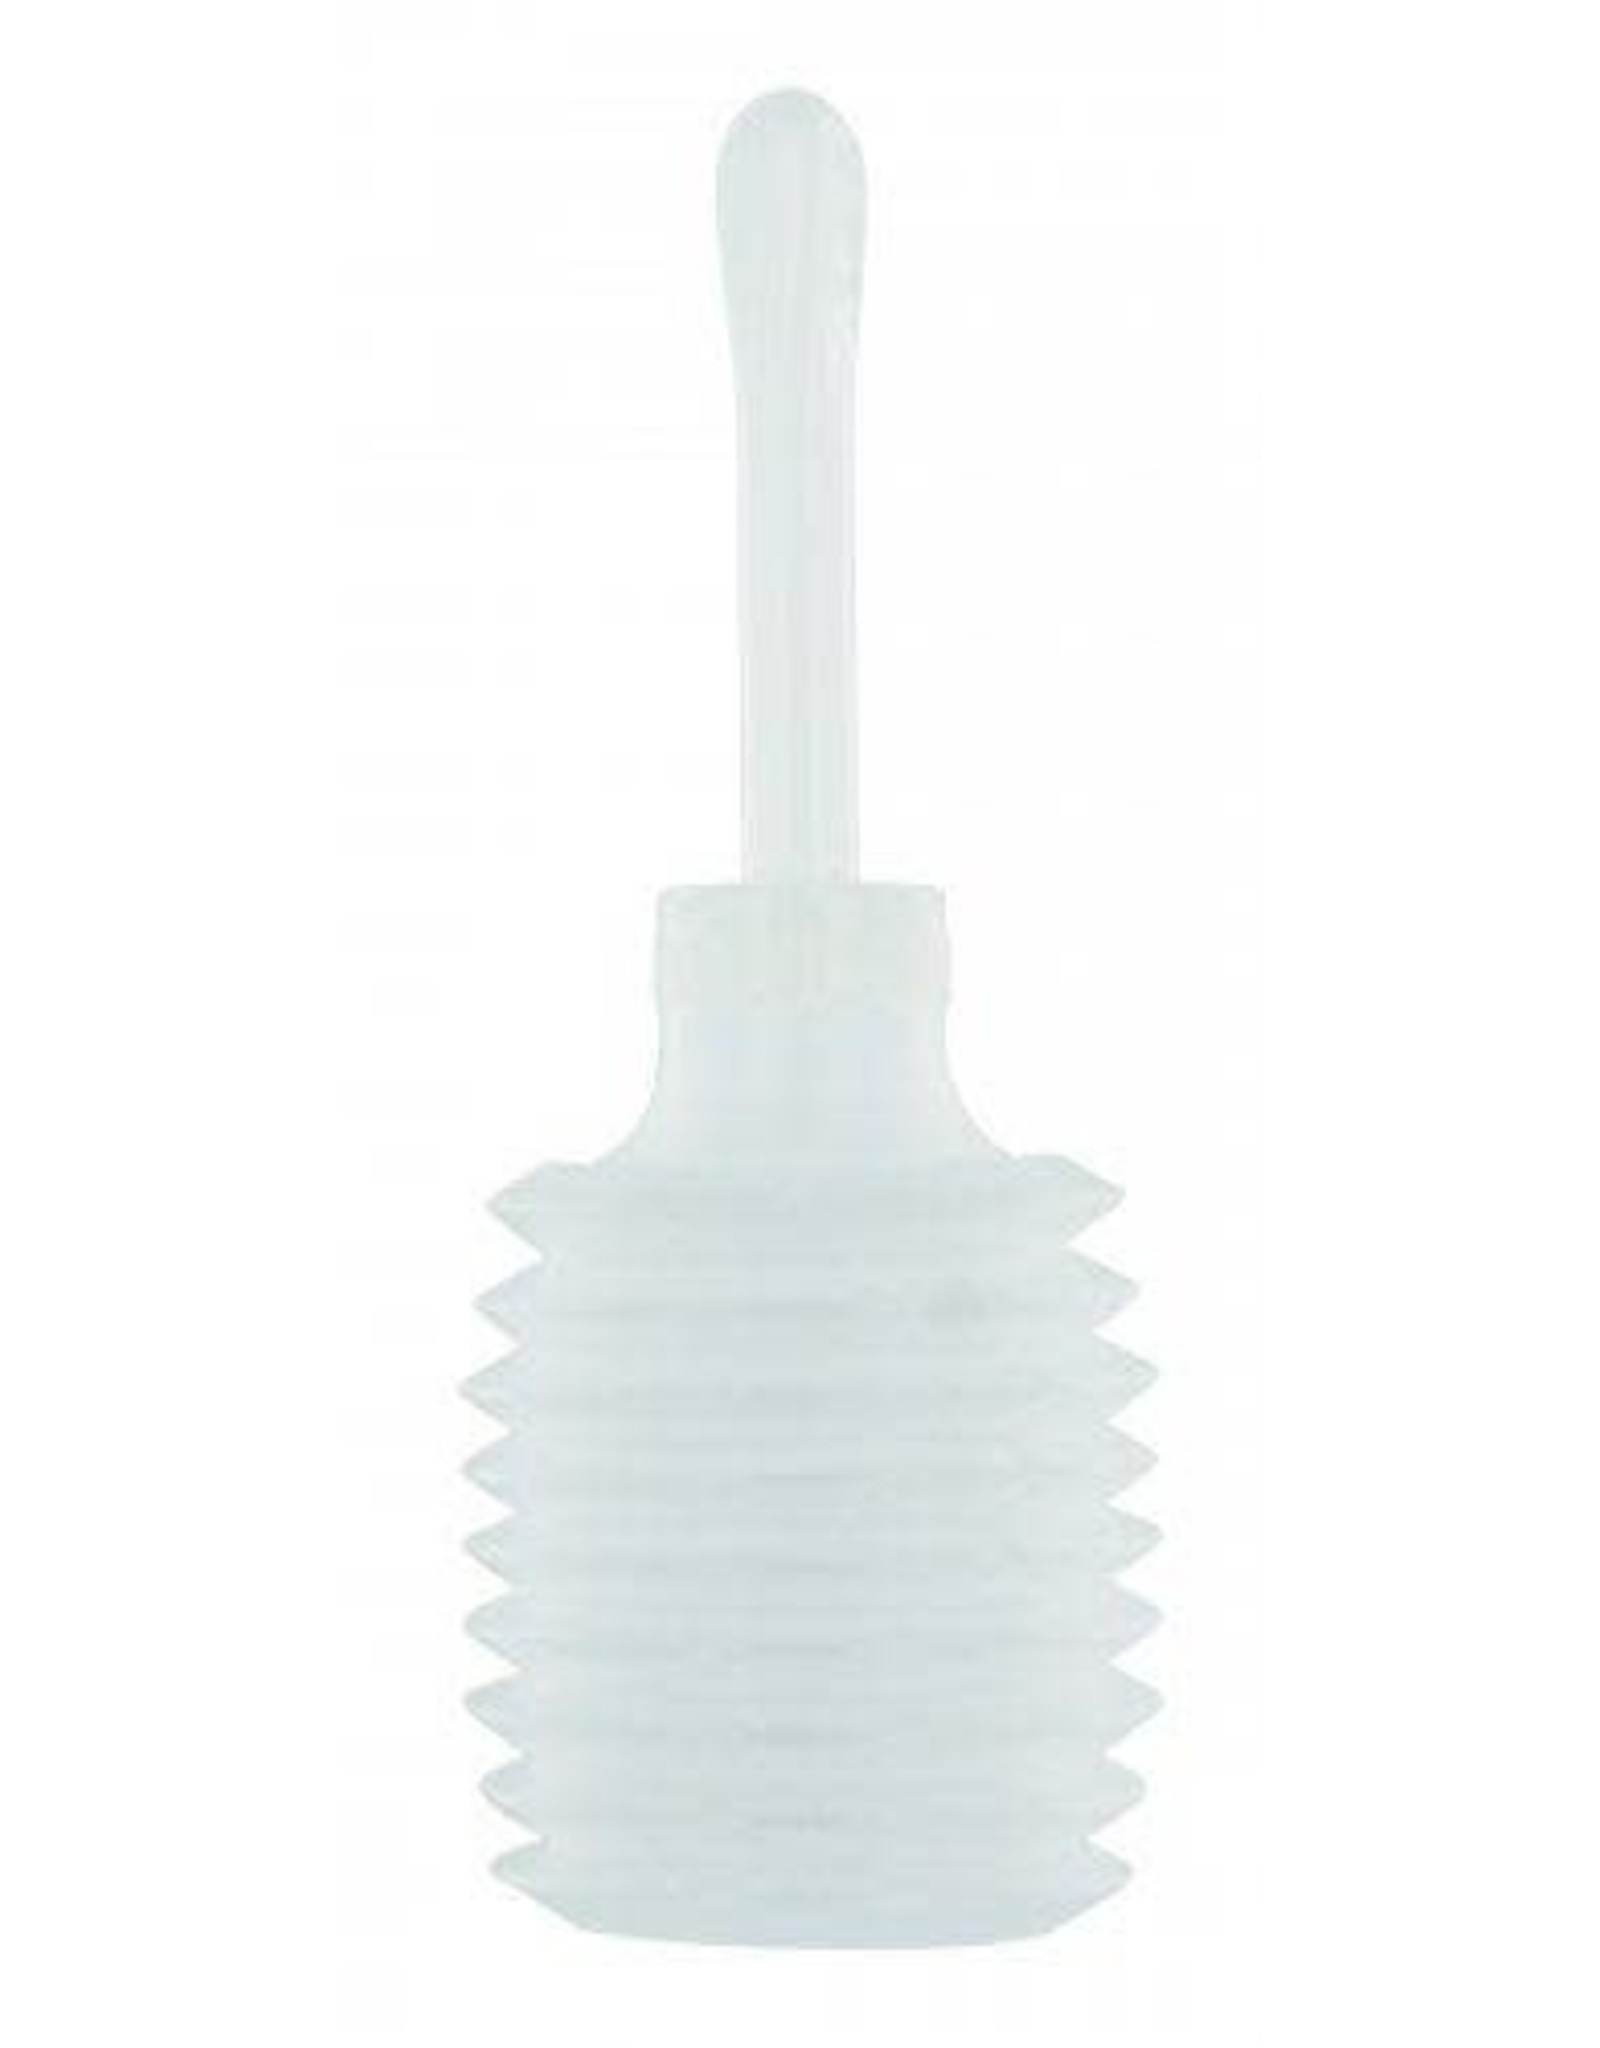 XR Brands Cleanstream Disposable Applicator